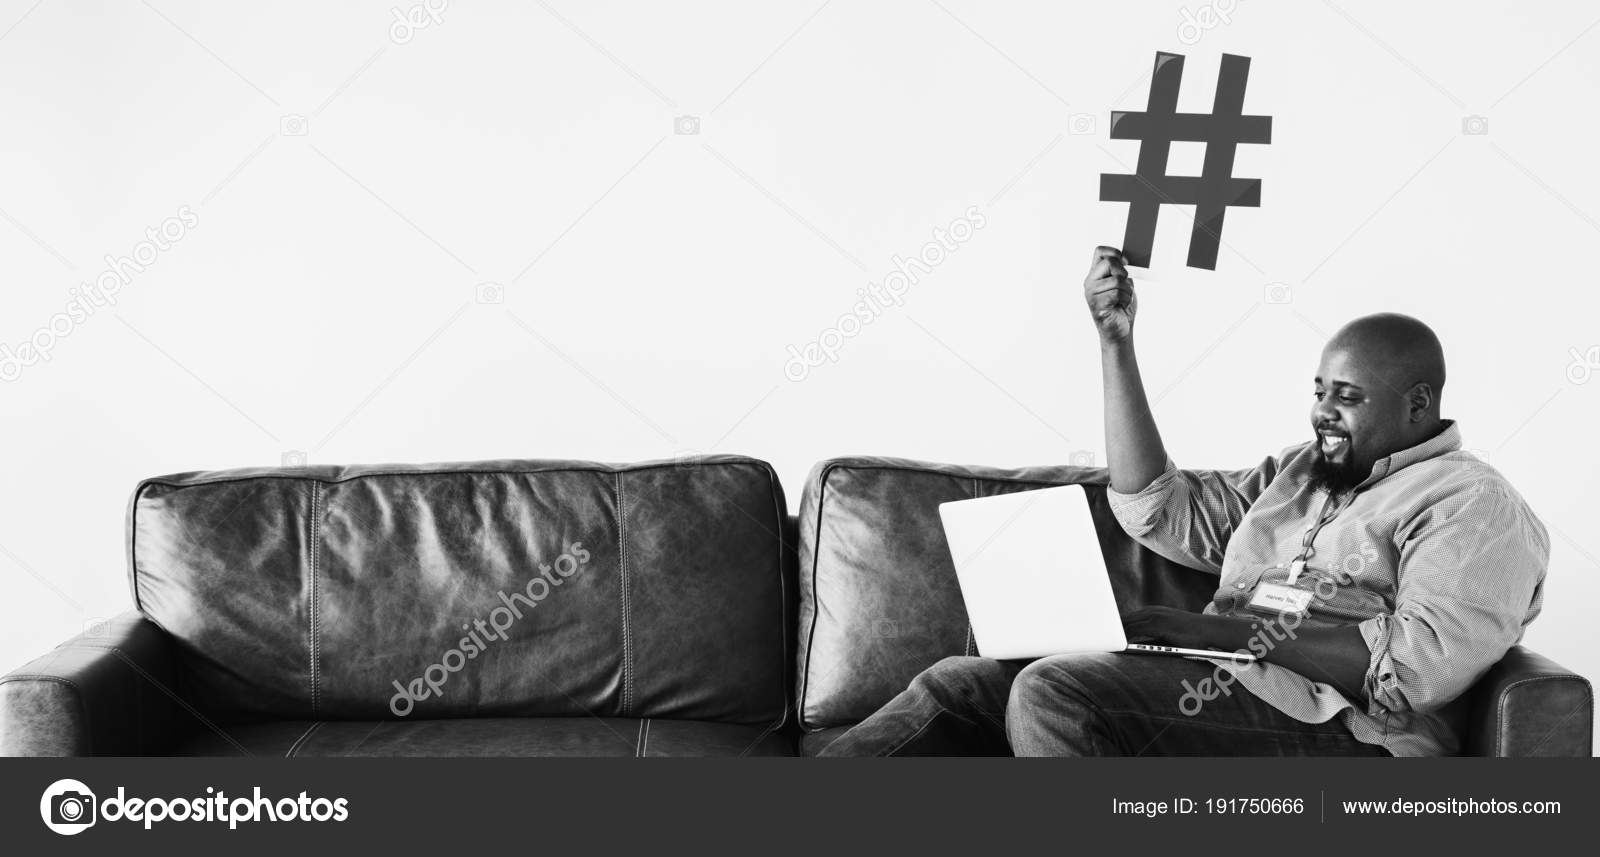 Black man relaxing on sofa and holding laptop with blue hashtag sign black and white photo by